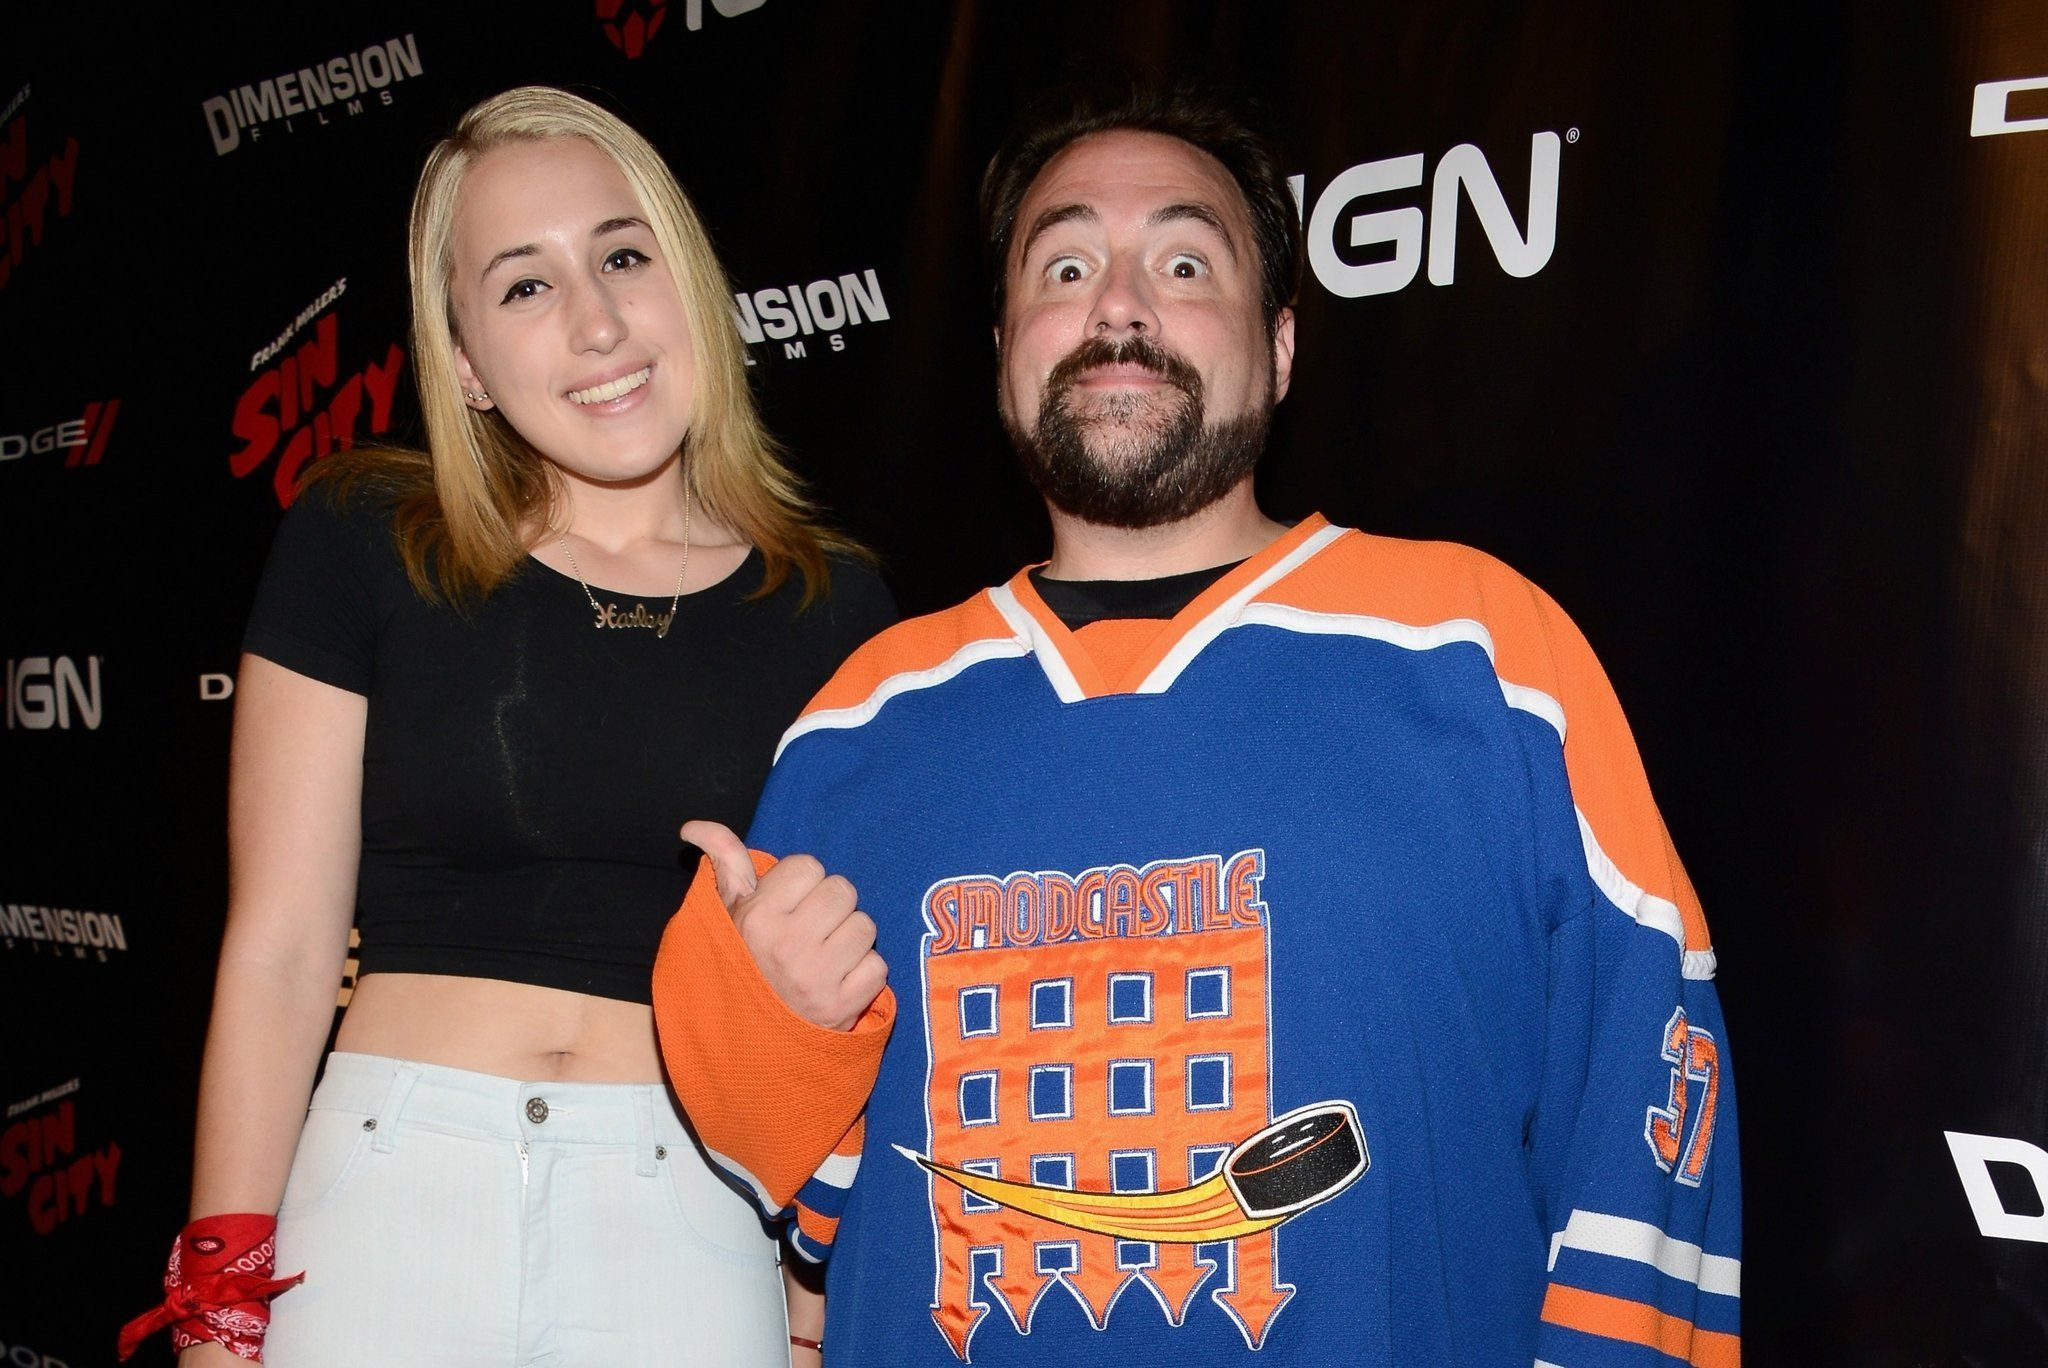 Kevin Smith and his daughter Harley Quinn